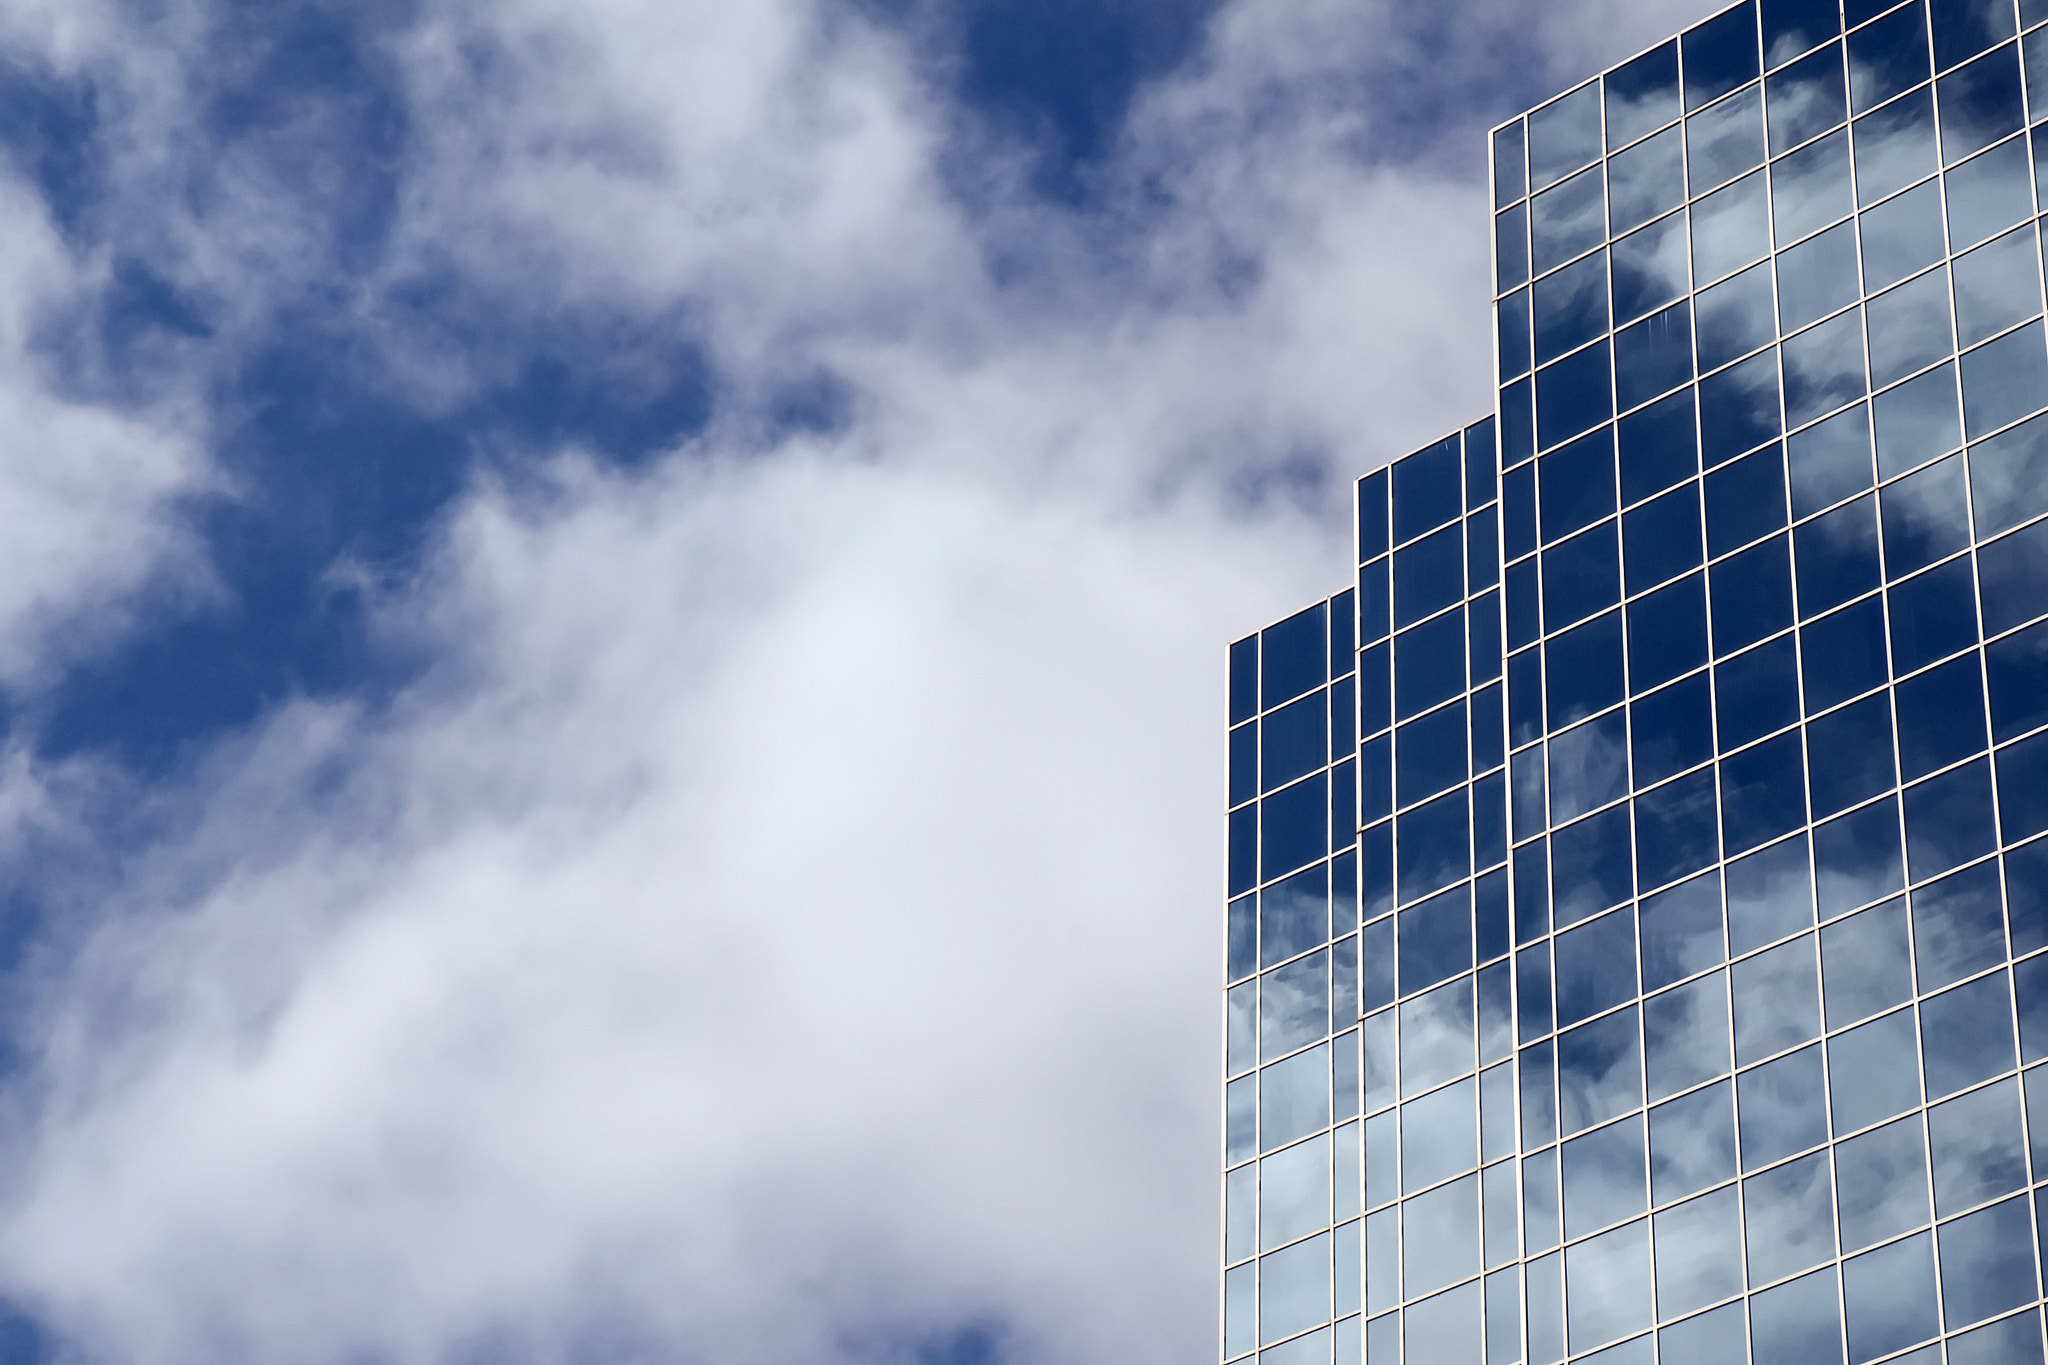 Photograph Windows To The Sky by Ian Thomas on 500px